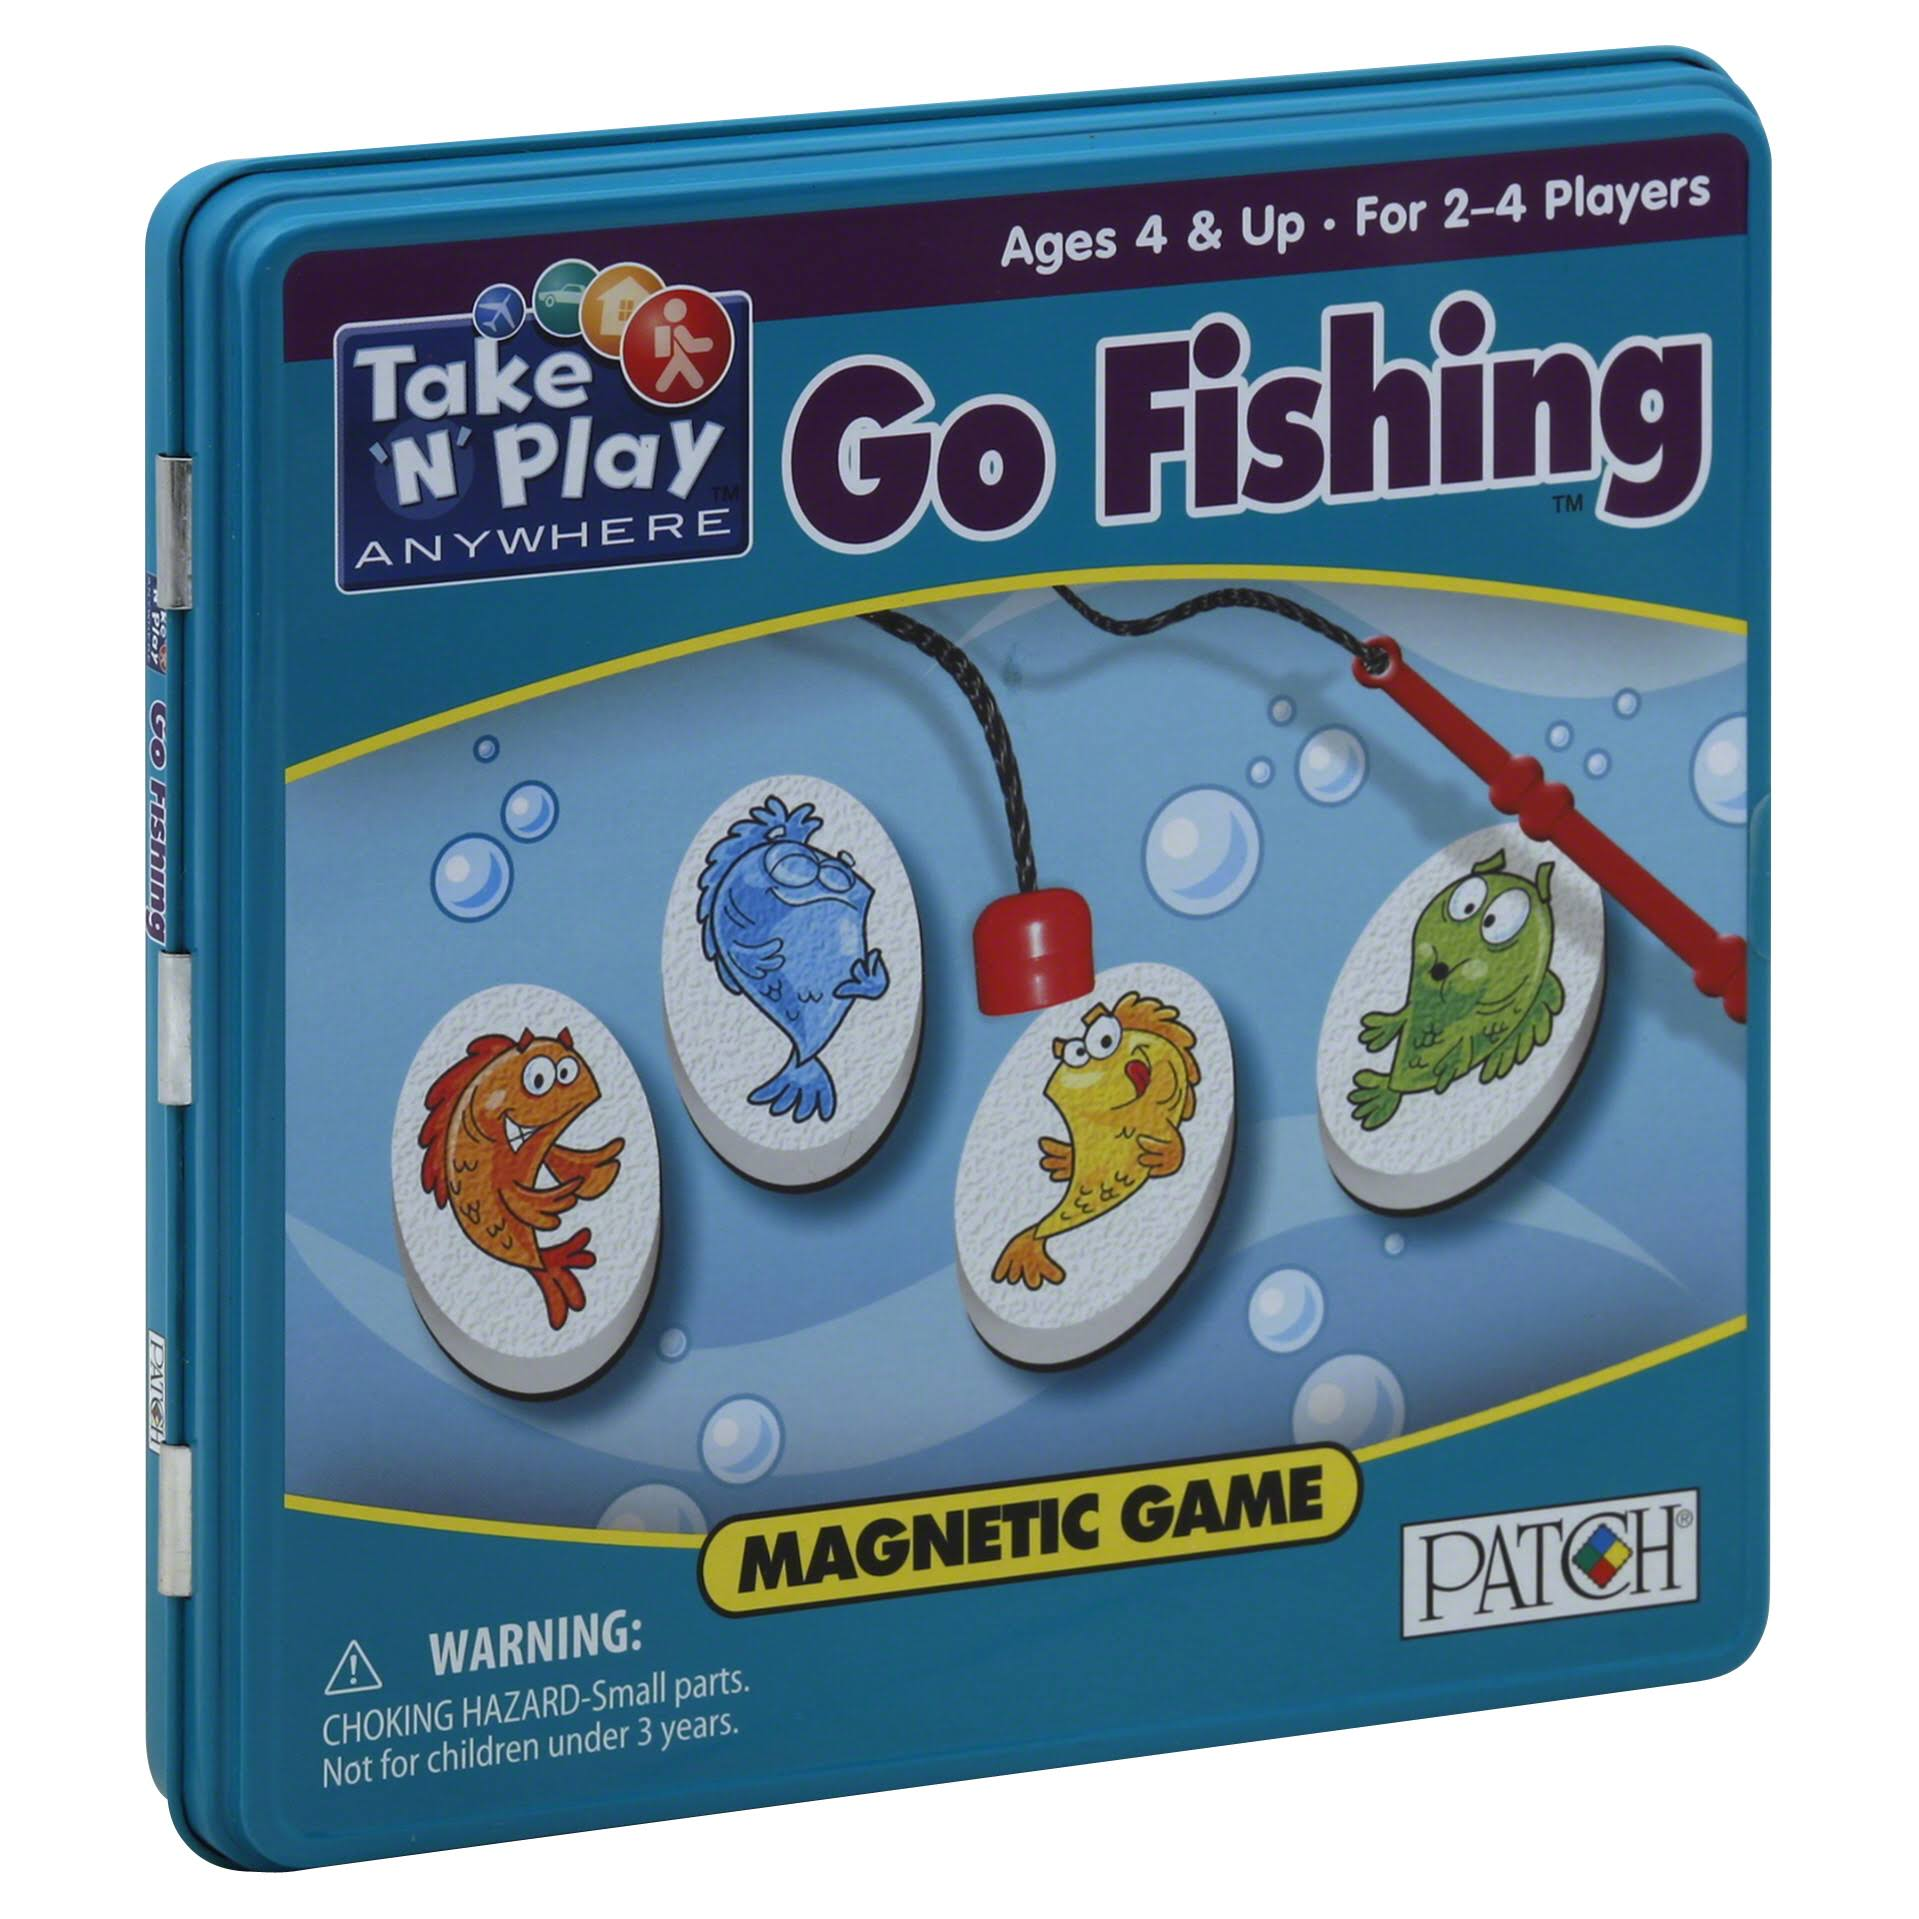 Patch Take 'N' Play Anywhere Go Fishing Magnetic Game